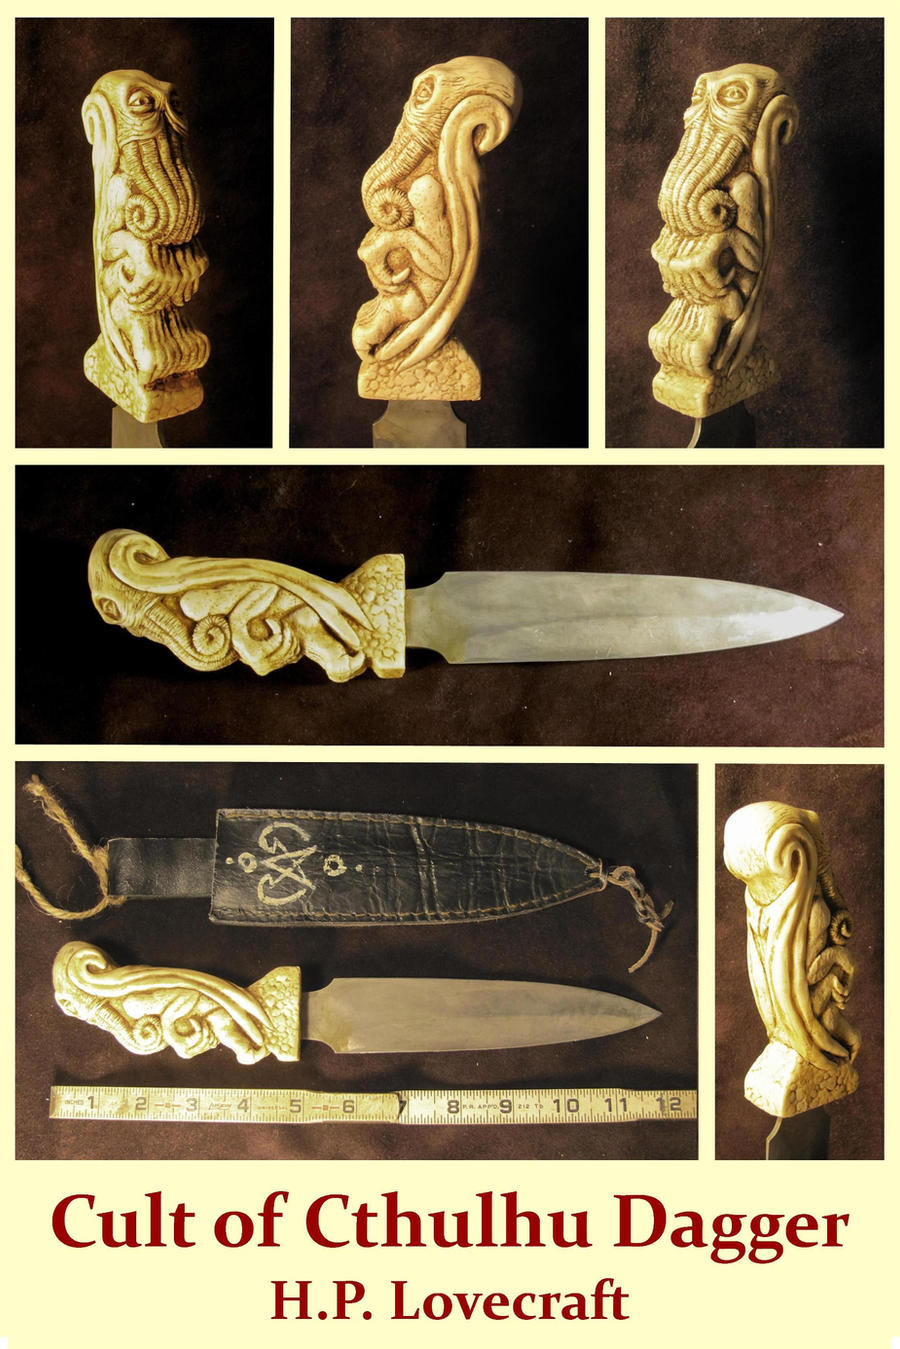 Cult of Cthulhu Dagger  - H.P. Lovecraft